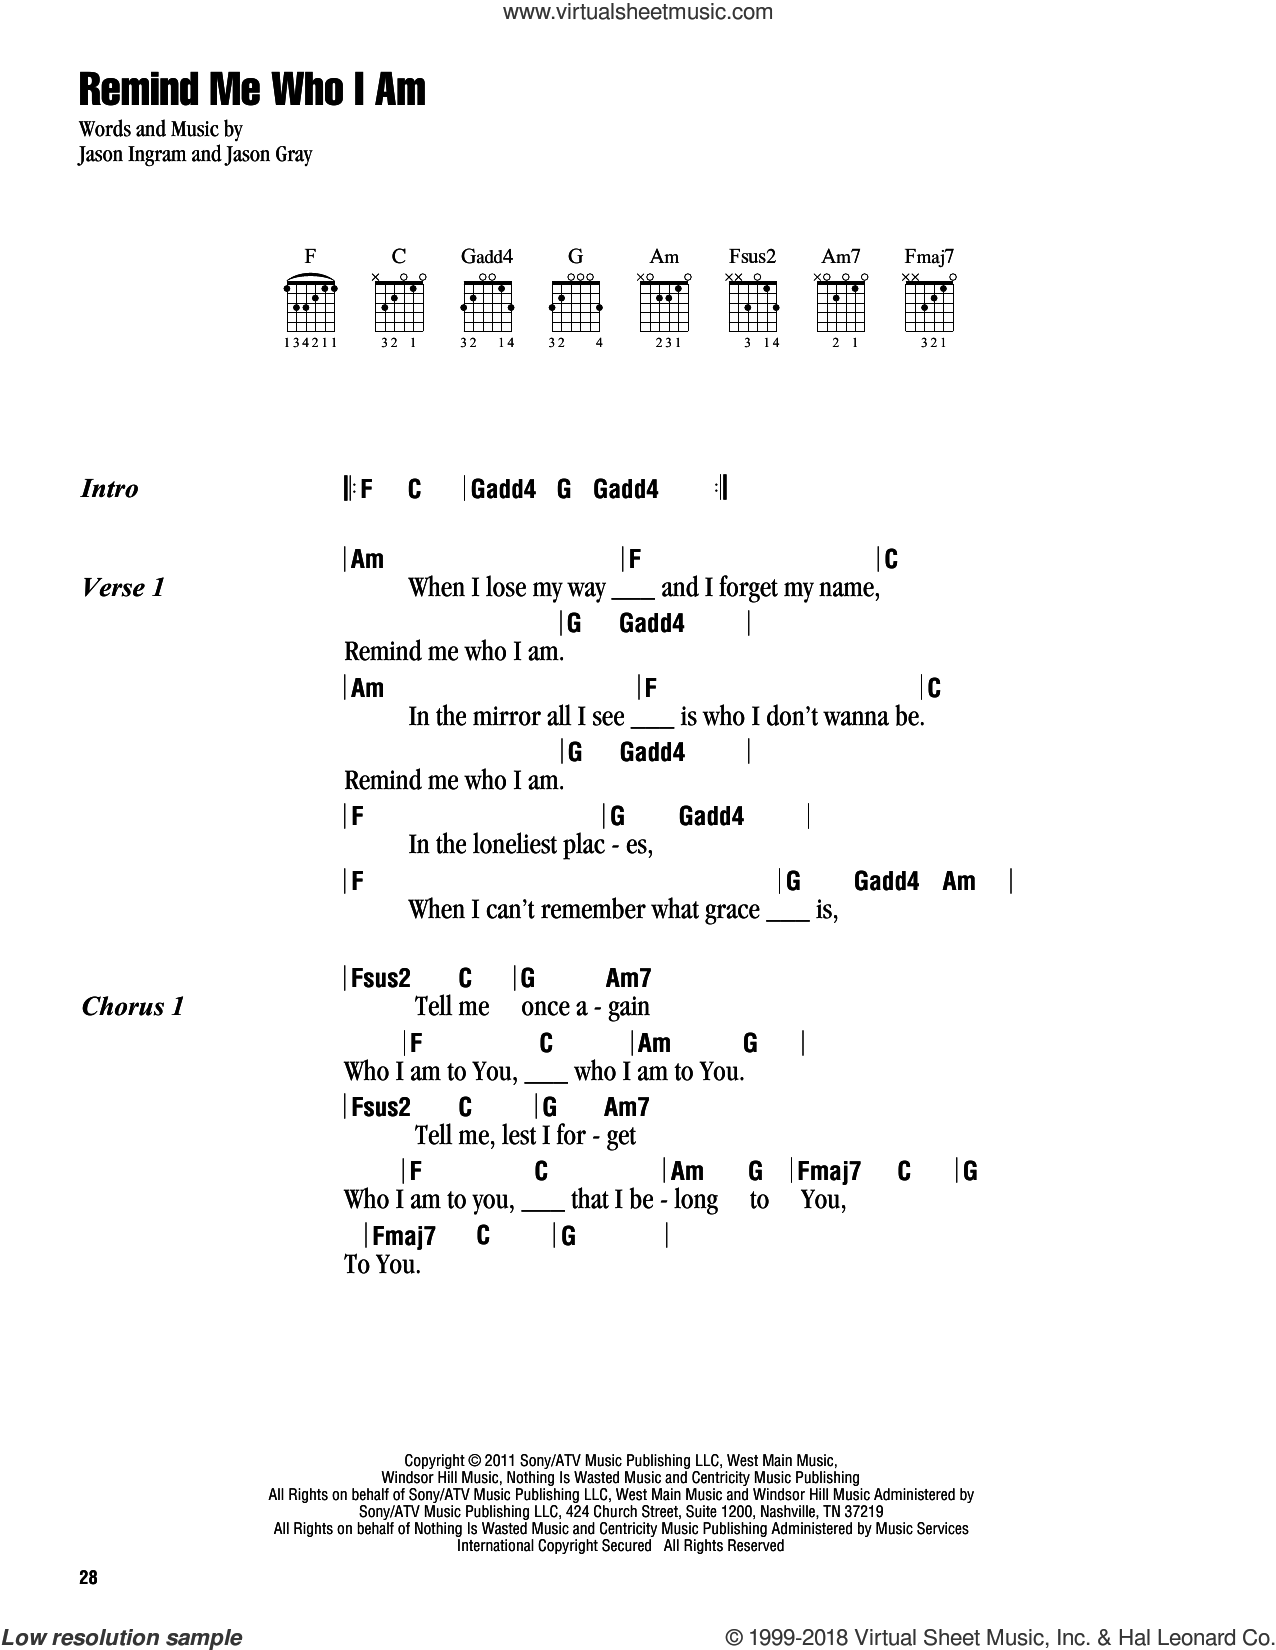 Remind Me Who I Am sheet music for guitar (chords) by Jason Ingram and Jason Gray. Score Image Preview.